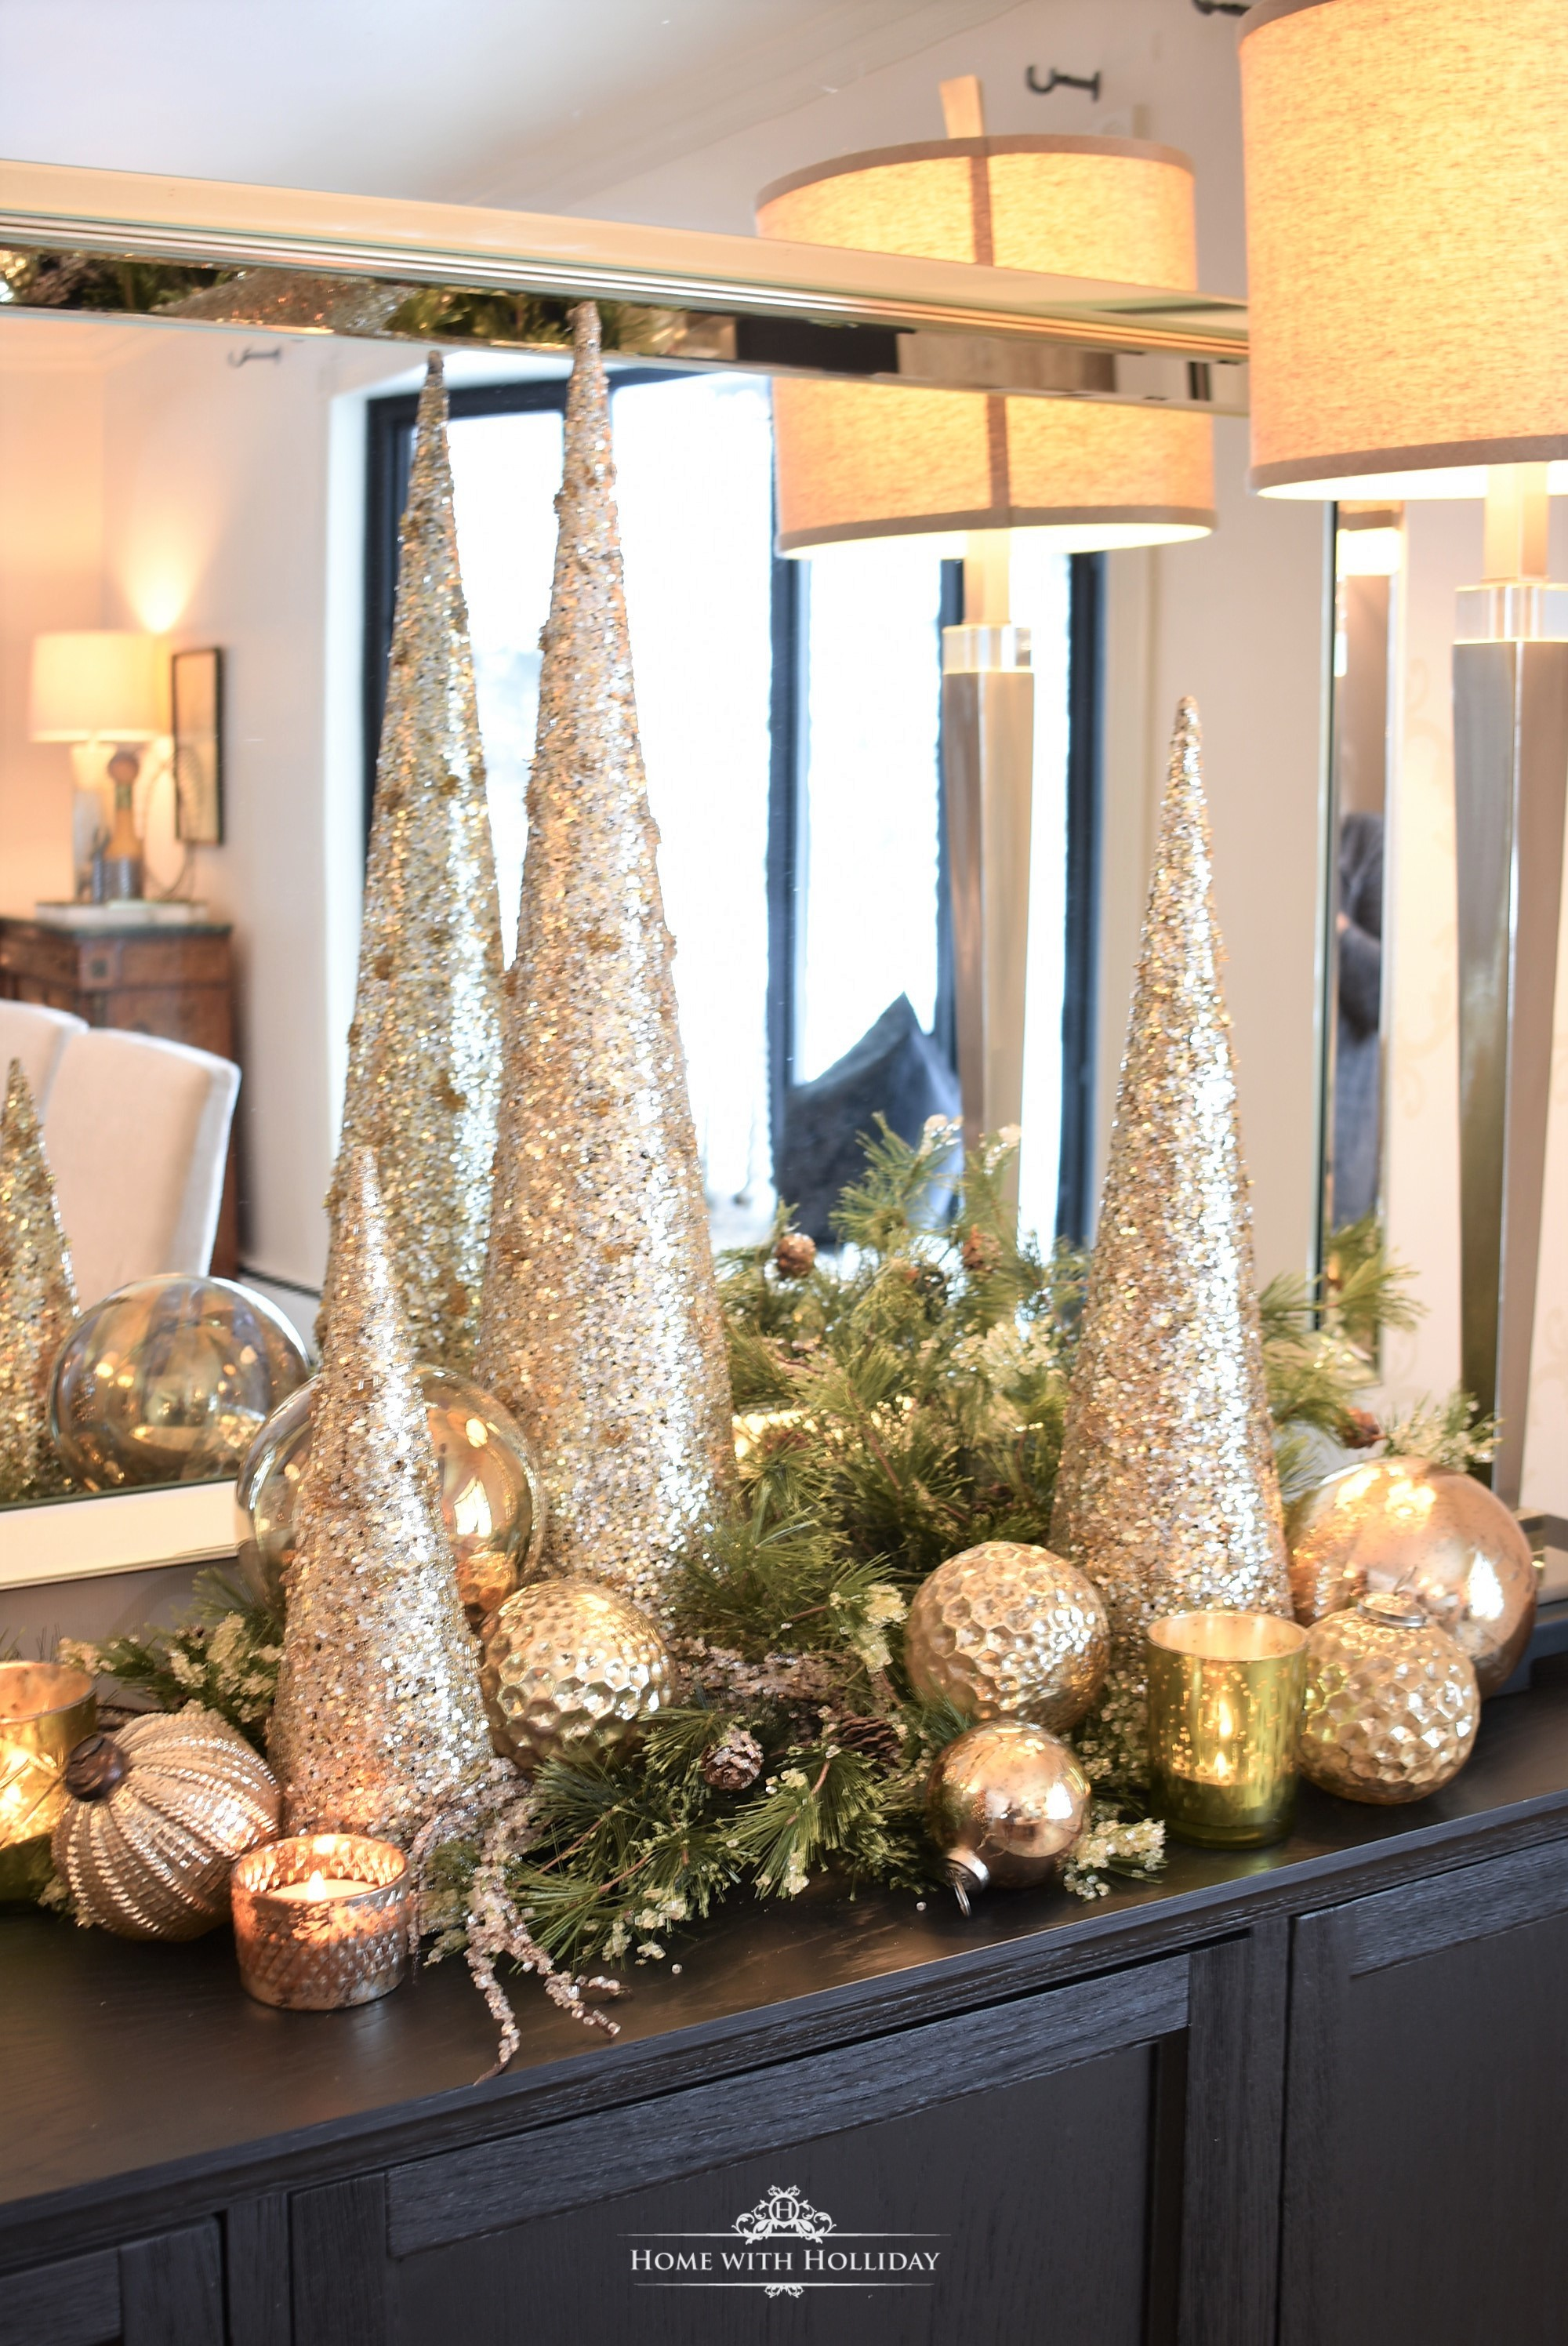 Inspiration for my Gold and Silver Snowflake Table Setting - Home with Holliday